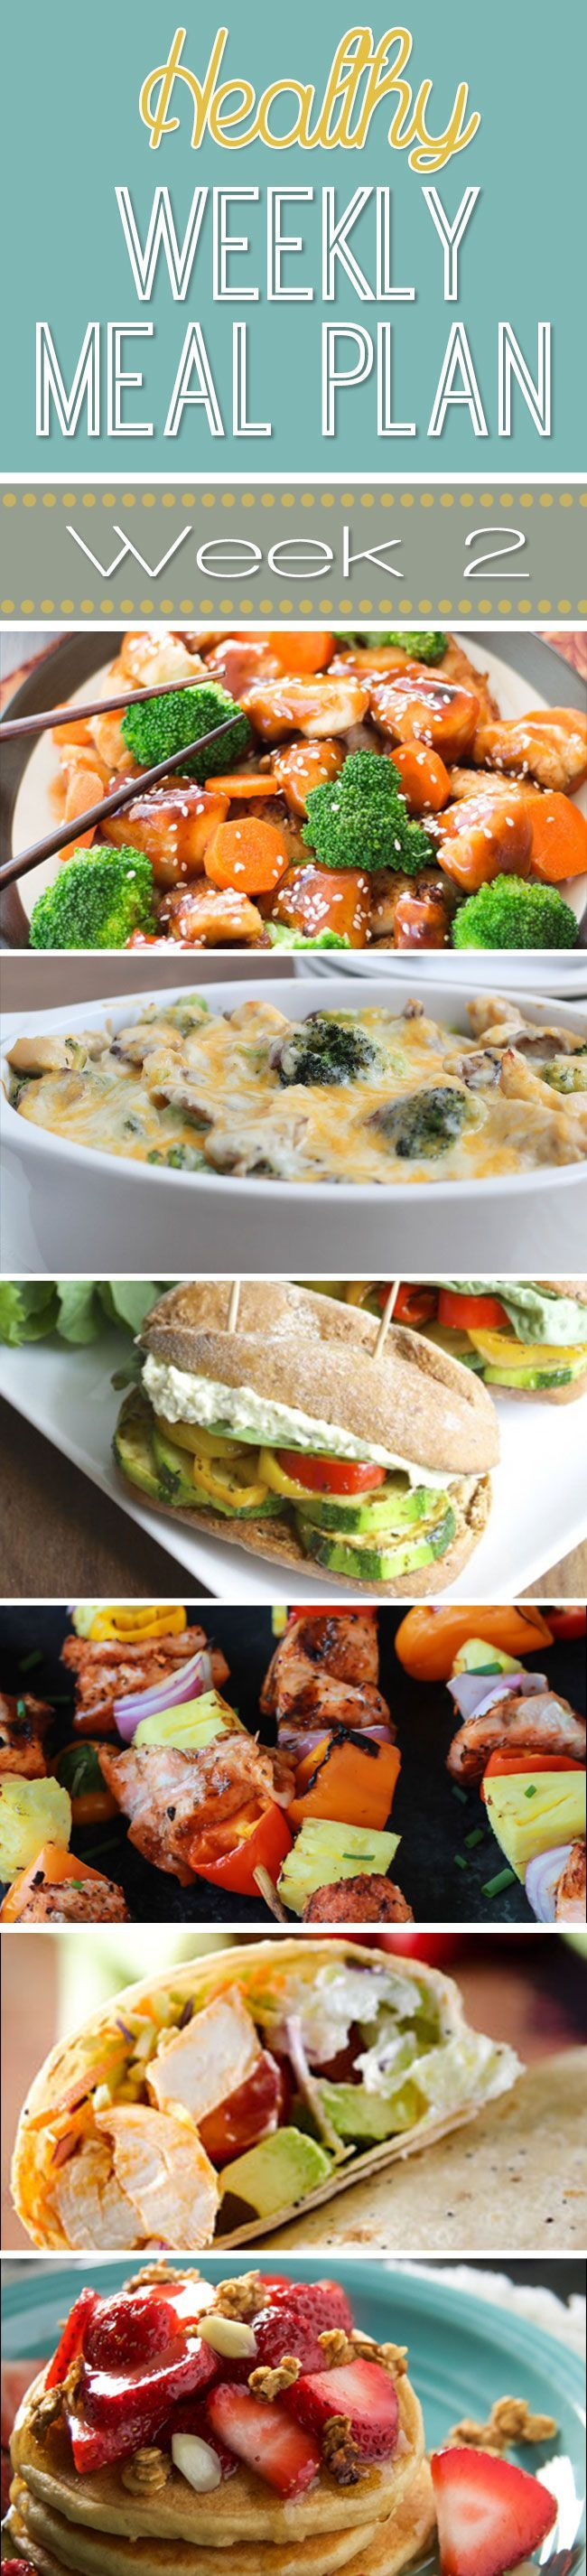 Healthy Weekly Meal Plan Week 2 - some great breakfast, lunch and dinner ideas in this menu roundup! healthy meal ideas, healthy meals #healthy